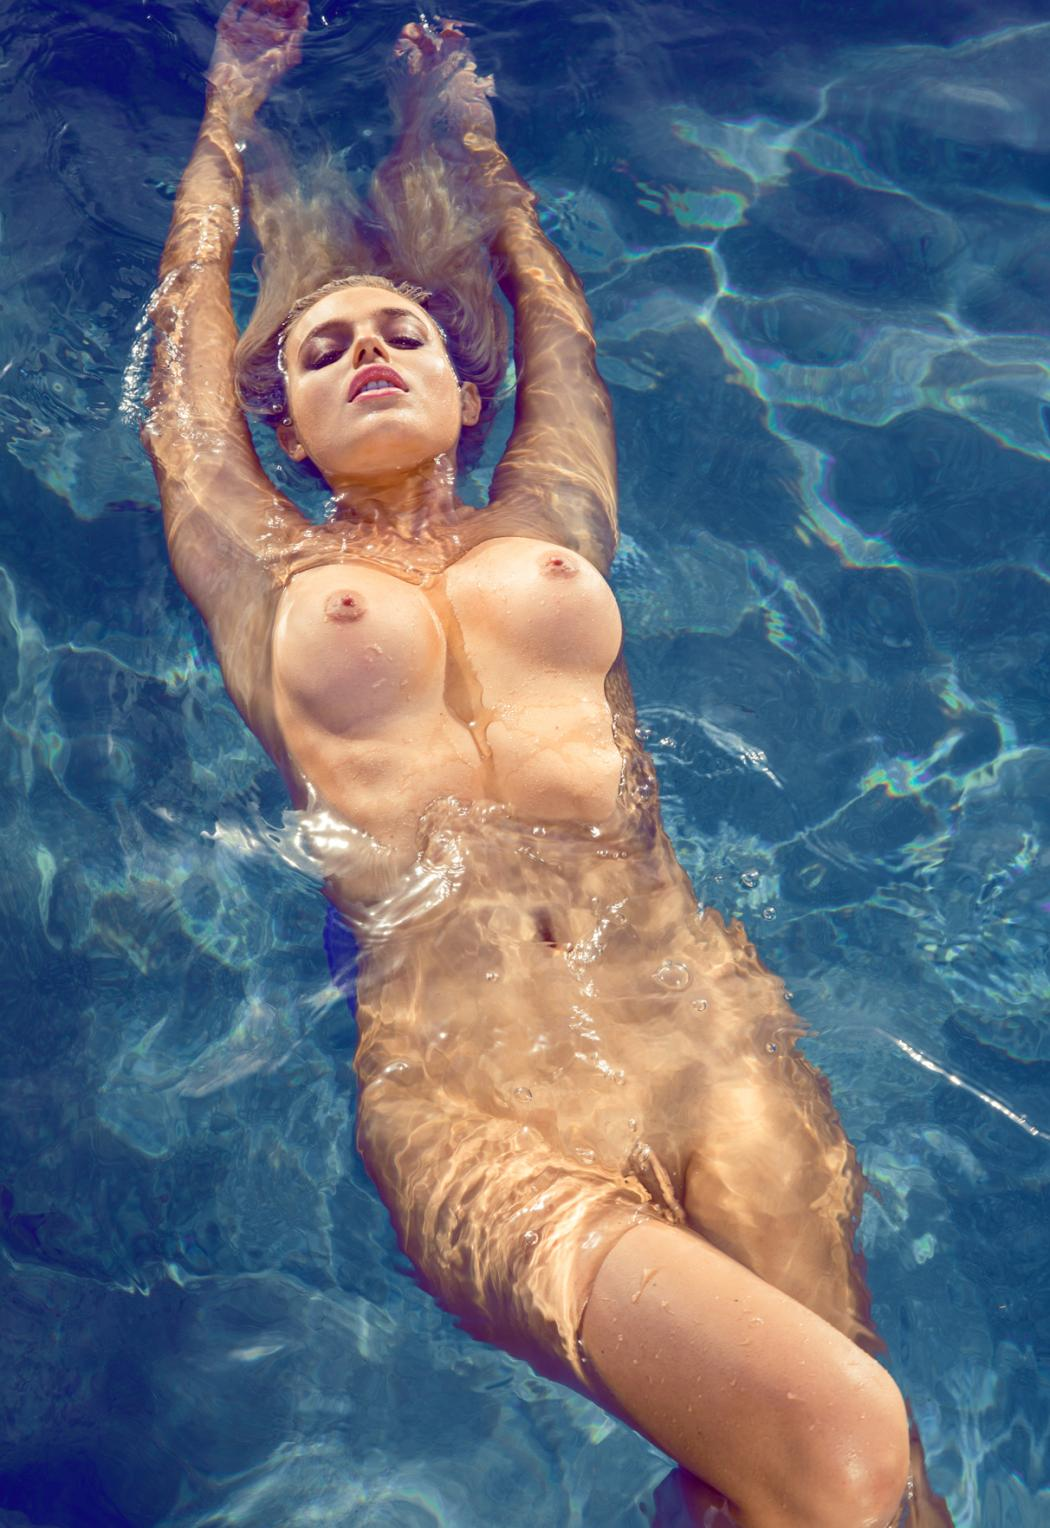 Charlize theron nude in head in the clouds scandalplanetcom - 3 part 2